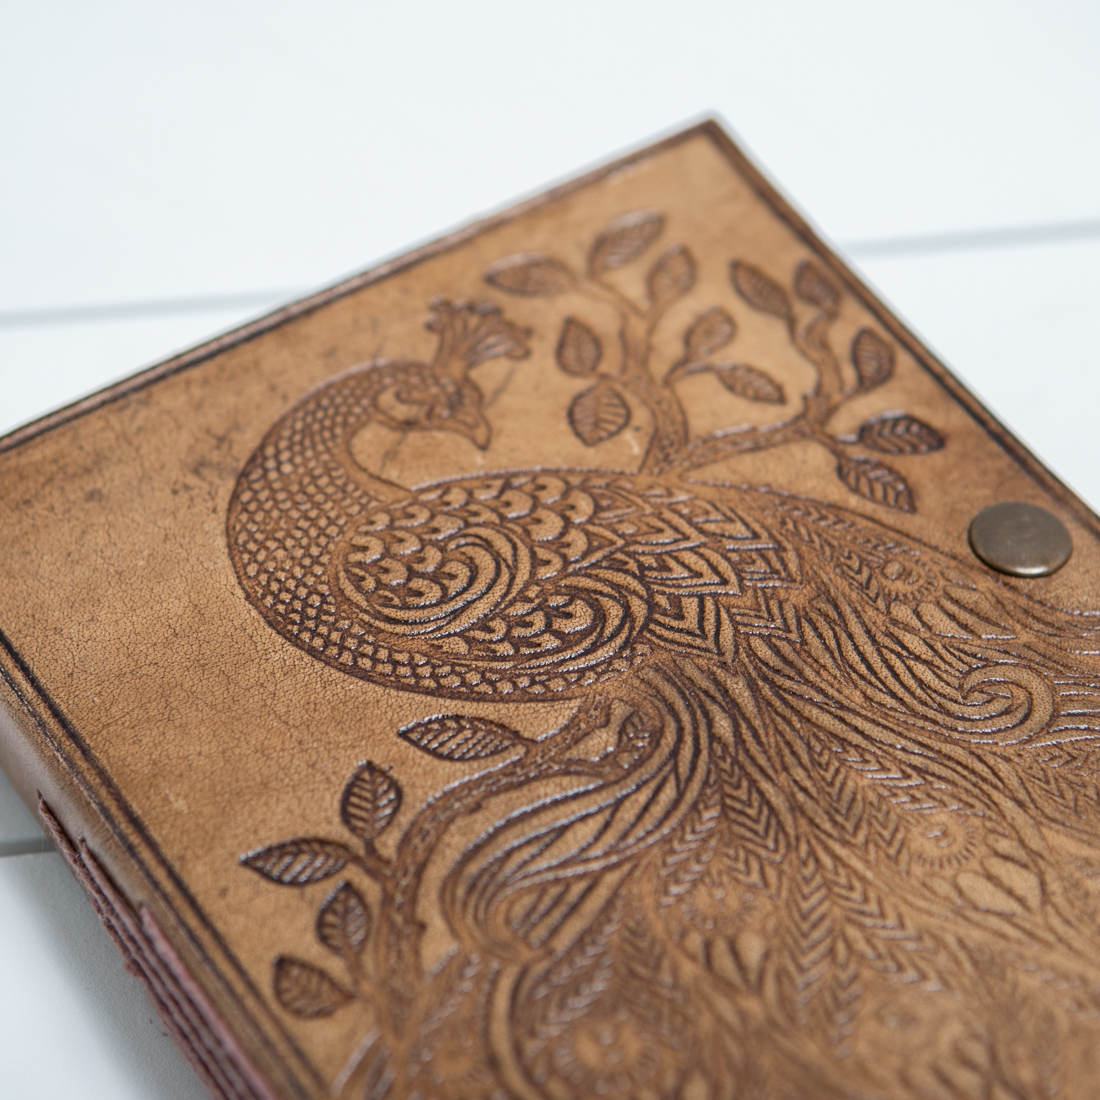 Debossed Peacock Leather Journal